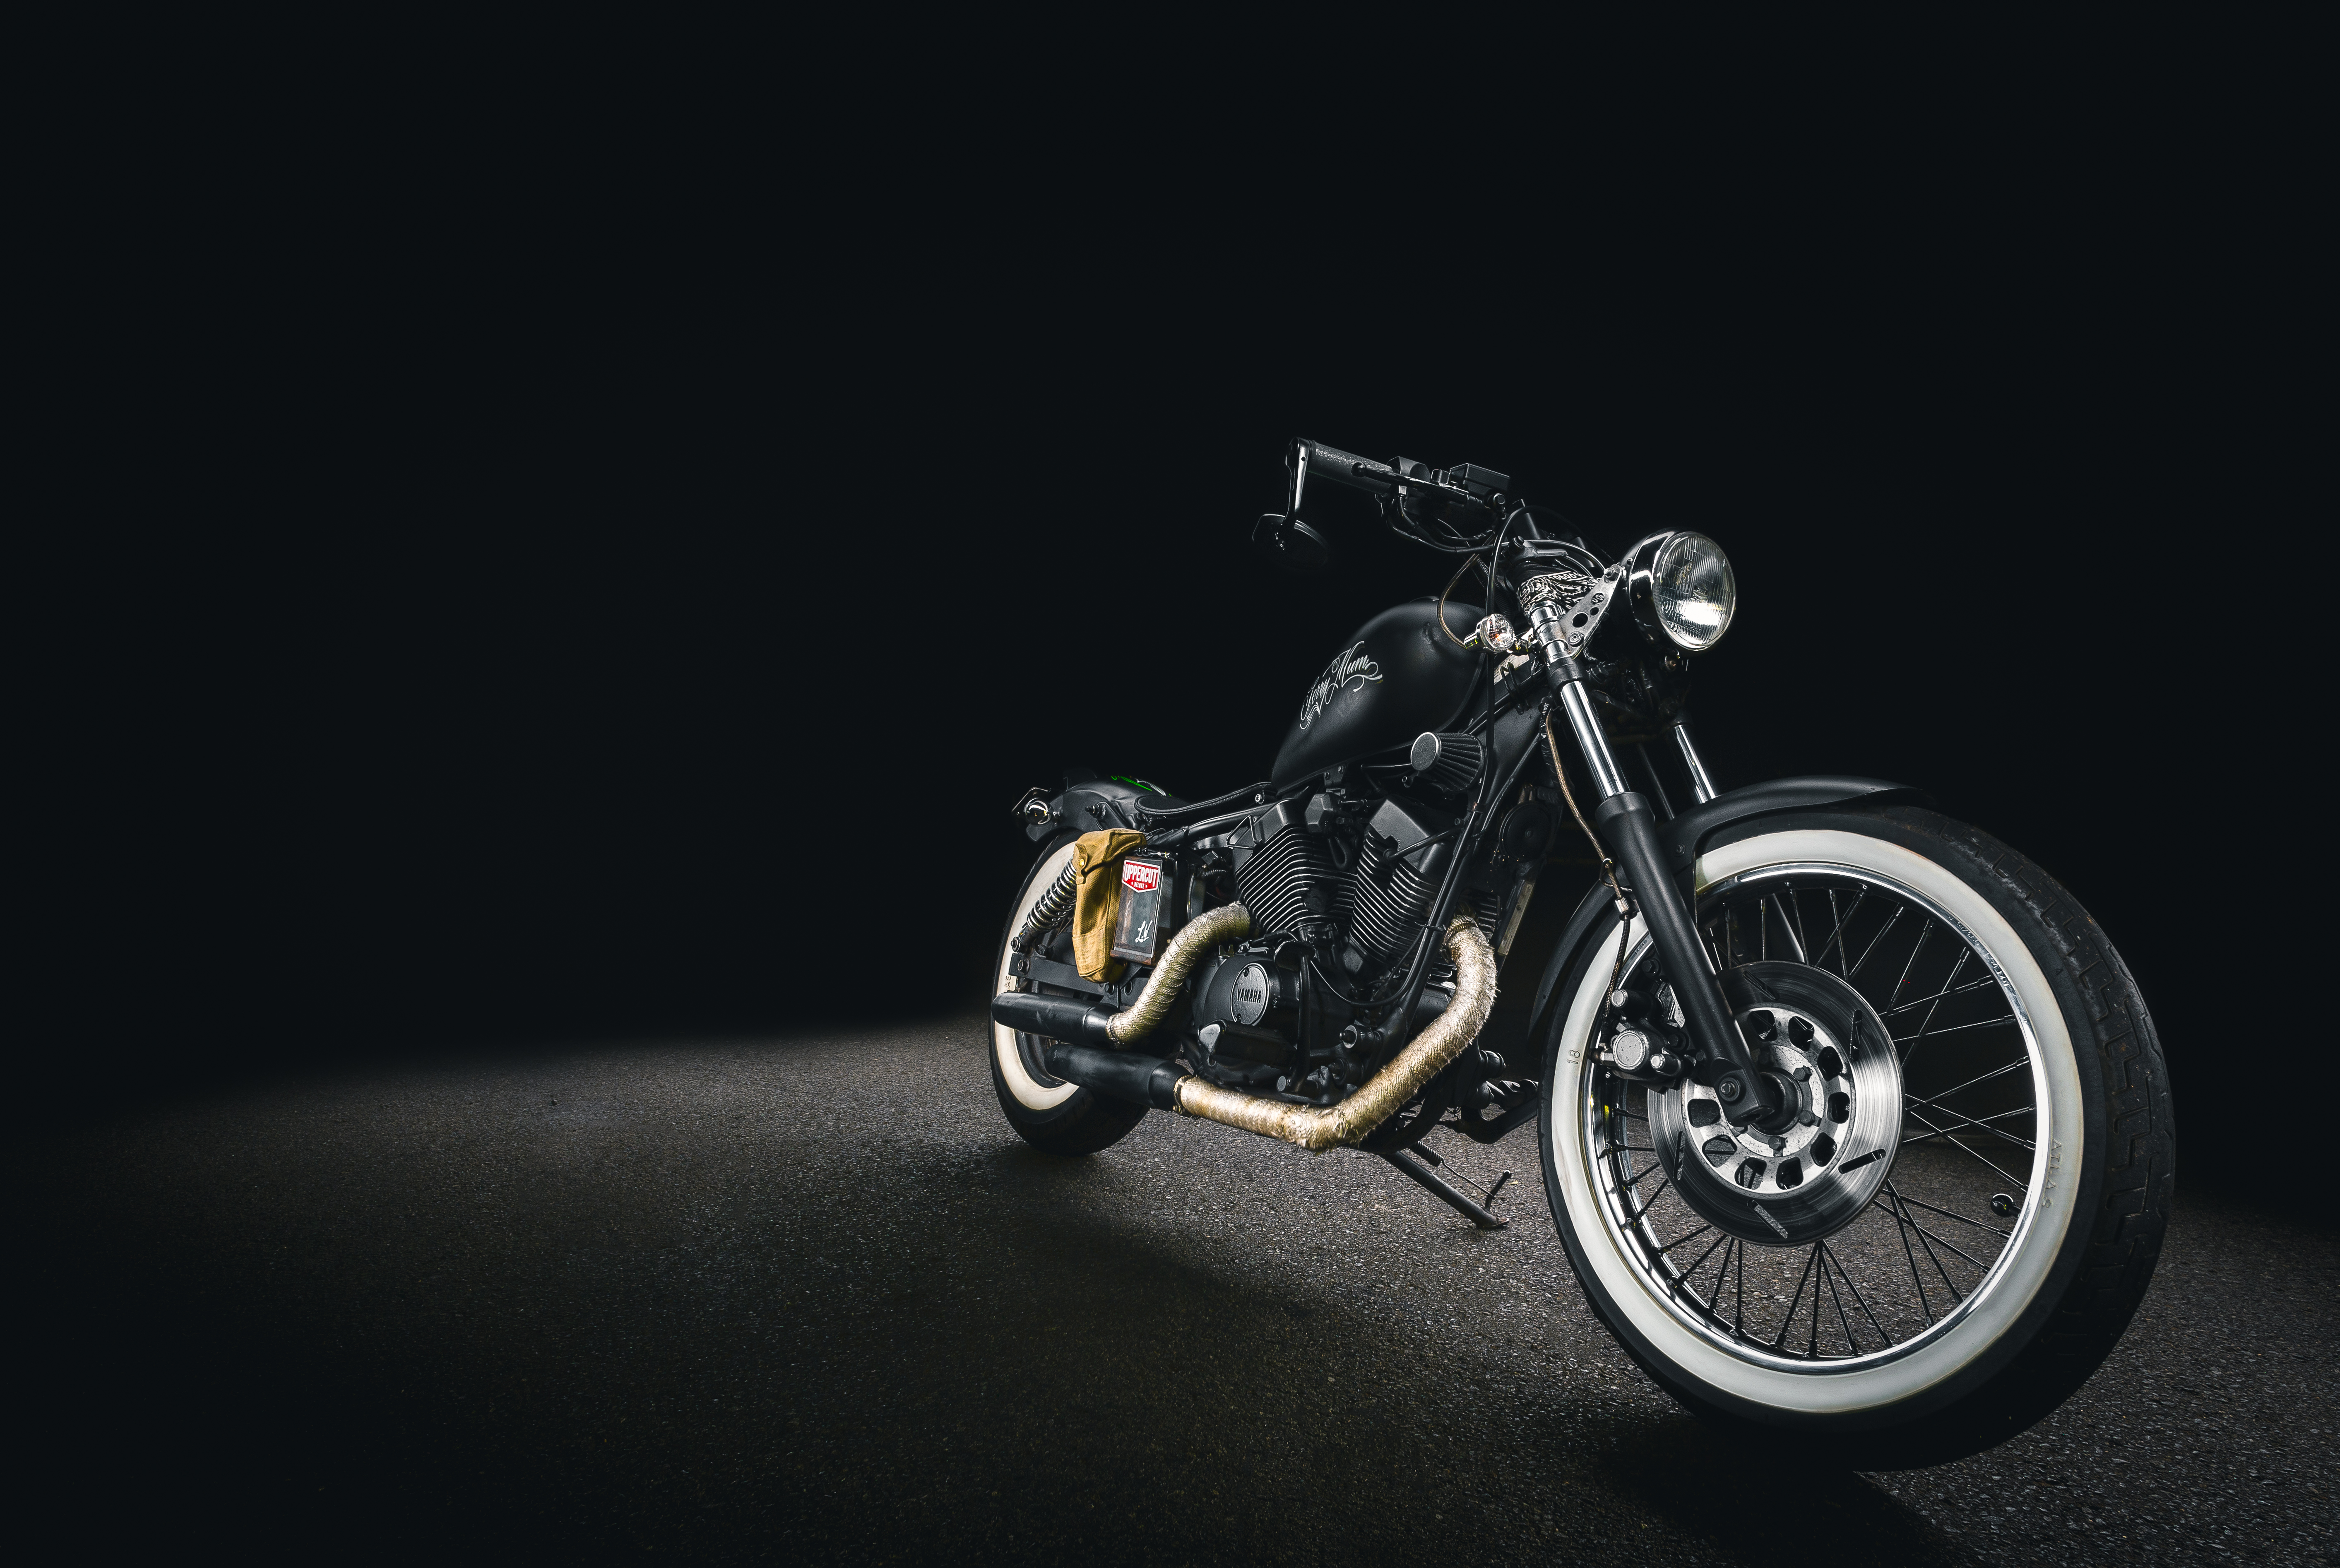 motorcycle background download  Motercycle Pictures | Download Free Images on Unsplash